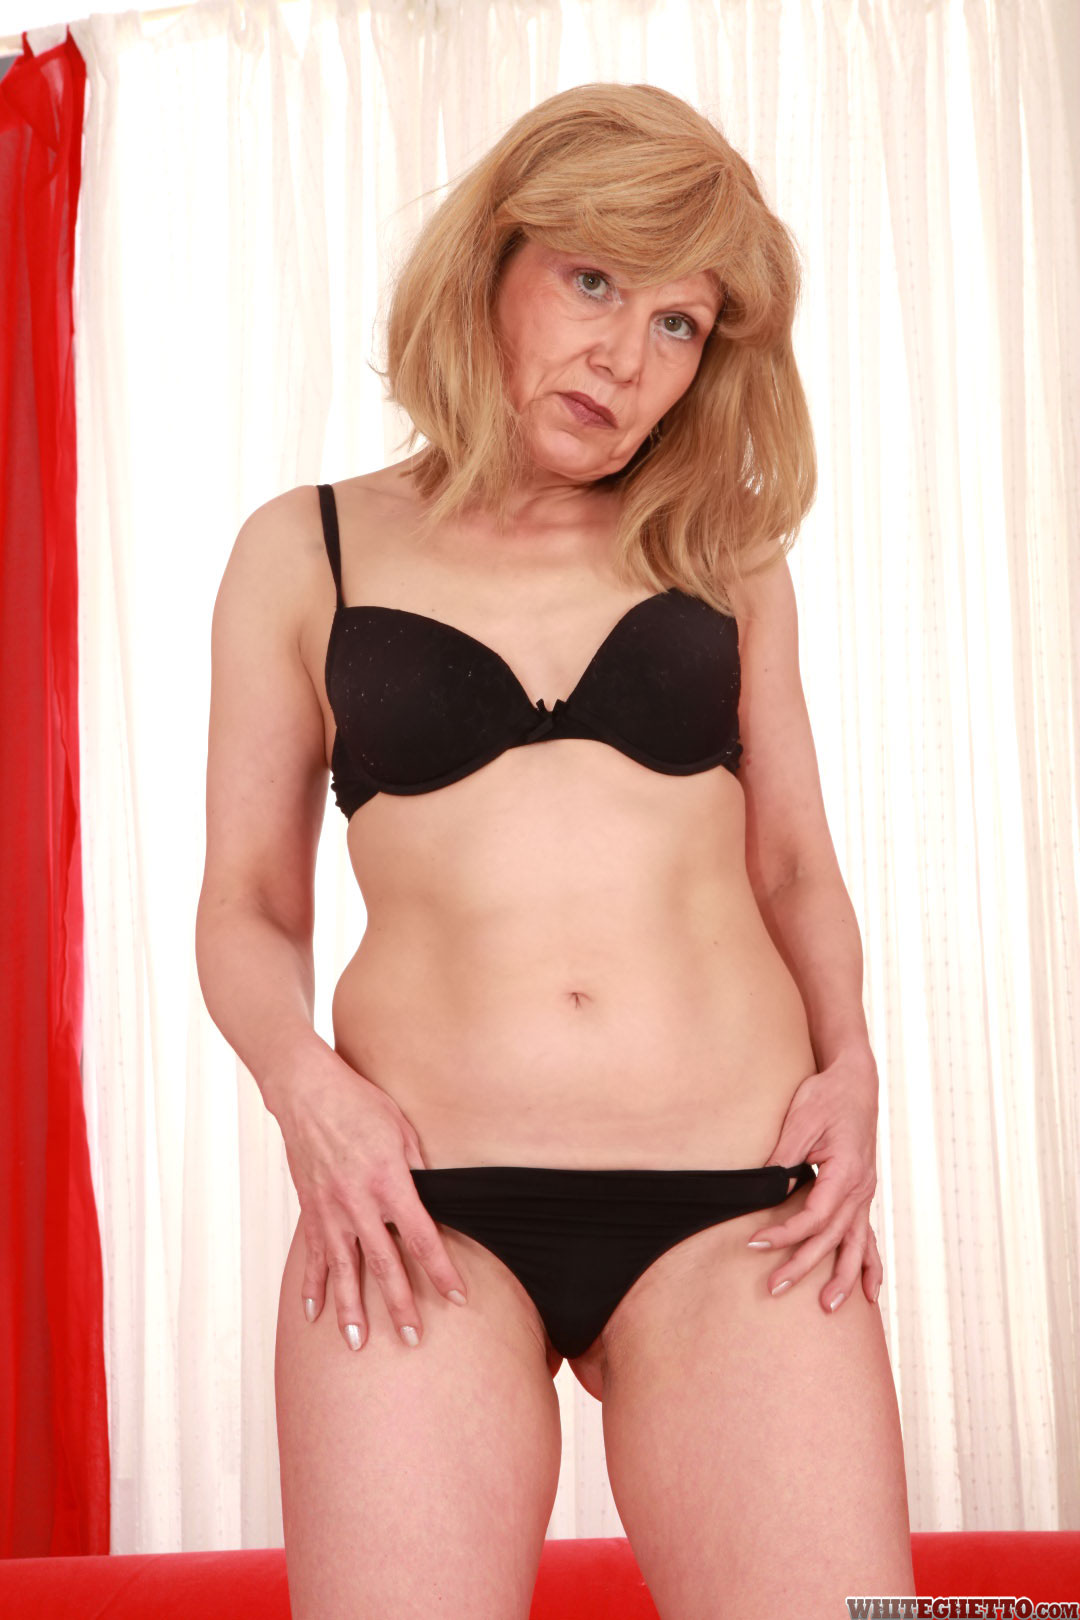 sxx pic teasers 8 80 8014 4d4d604797 non nude 01 8014 10